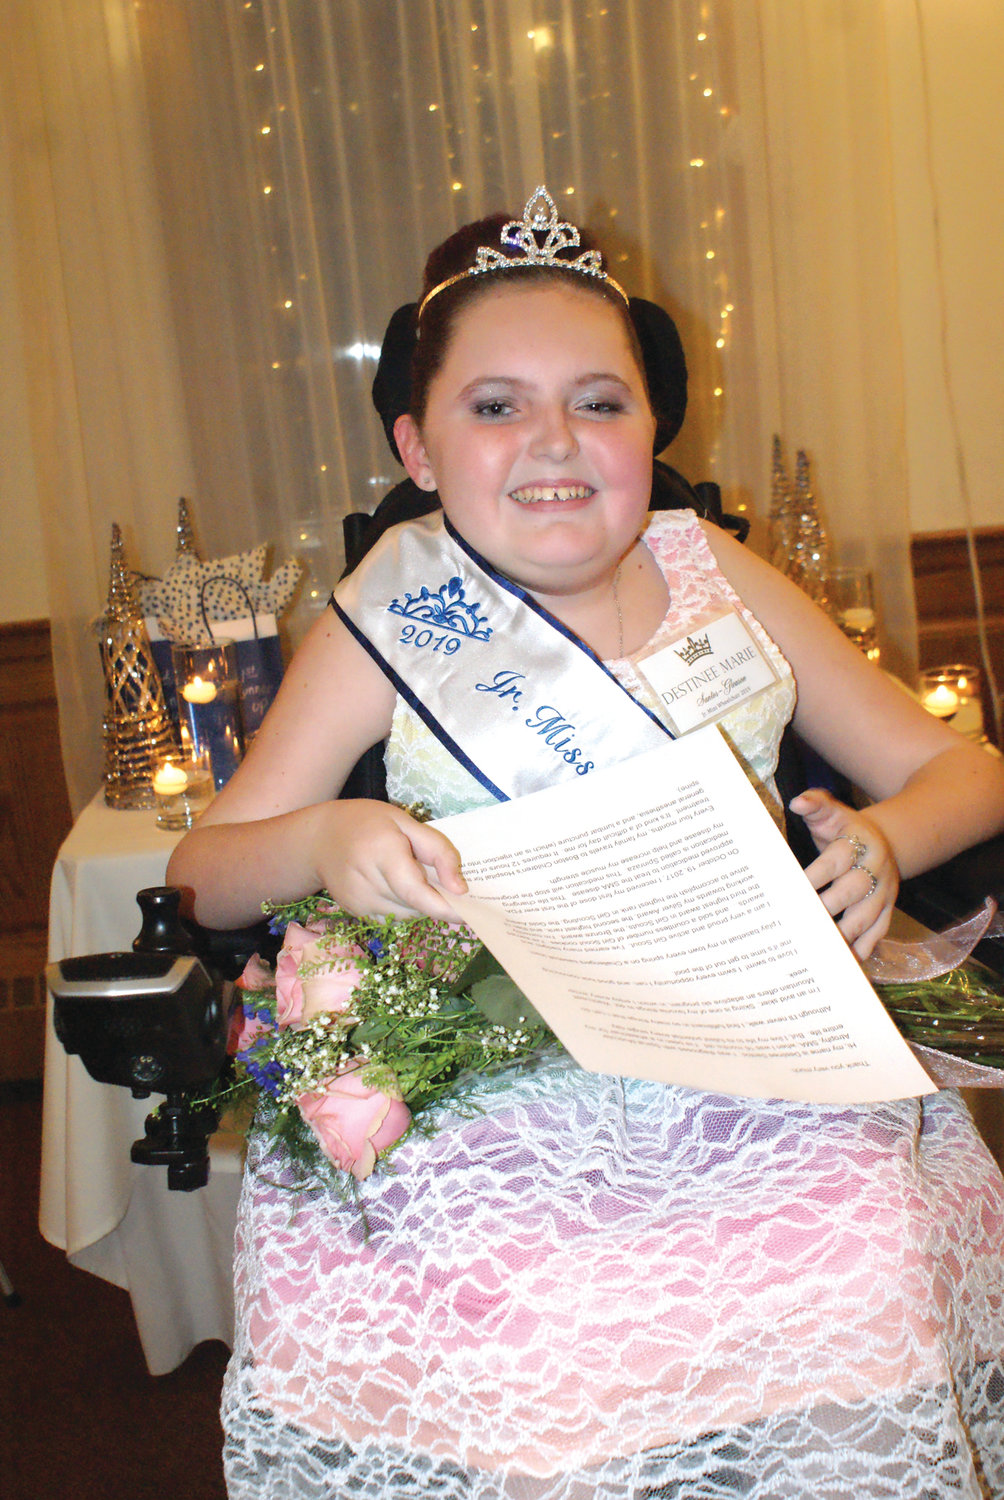 JR. MISS WHEELCHAIR: Destinee Marie Santos-Gleason, 11, of Lincoln has been named the state's first Jr. Miss Wheelchair. She is an active Girl Scout and on the honor roll at her middle school.